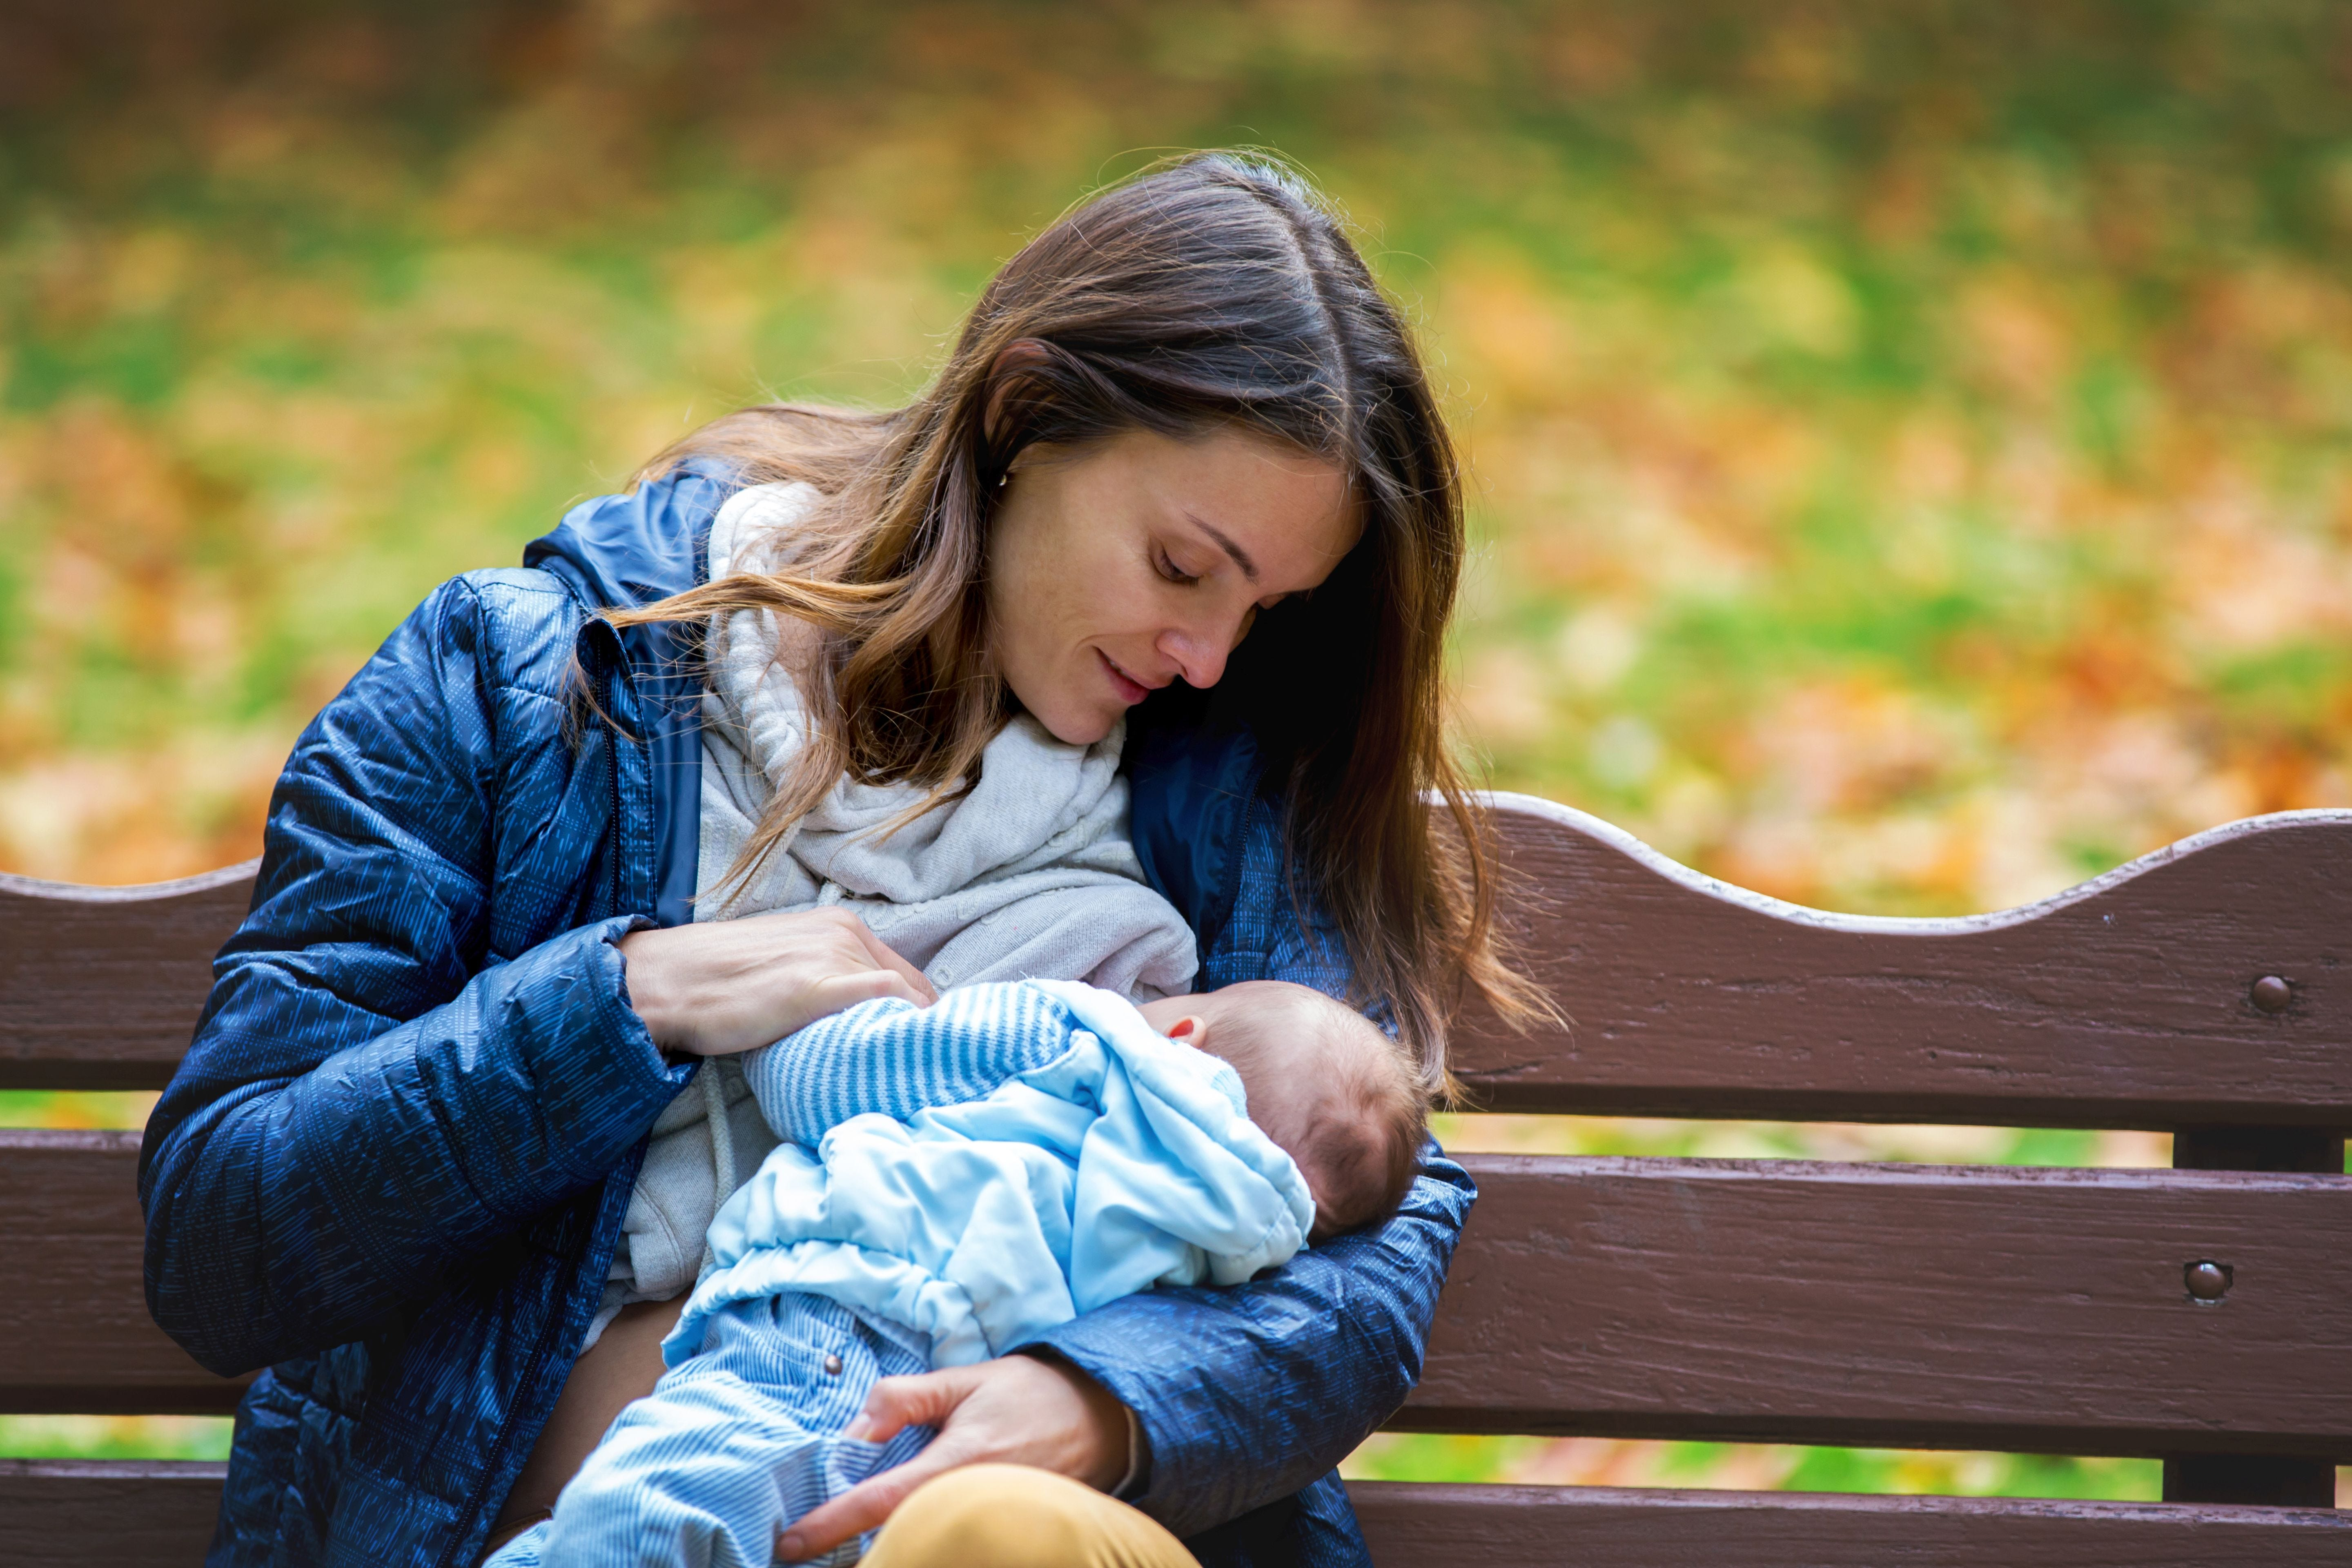 Sport and breastfeeding: what to choose a young mother